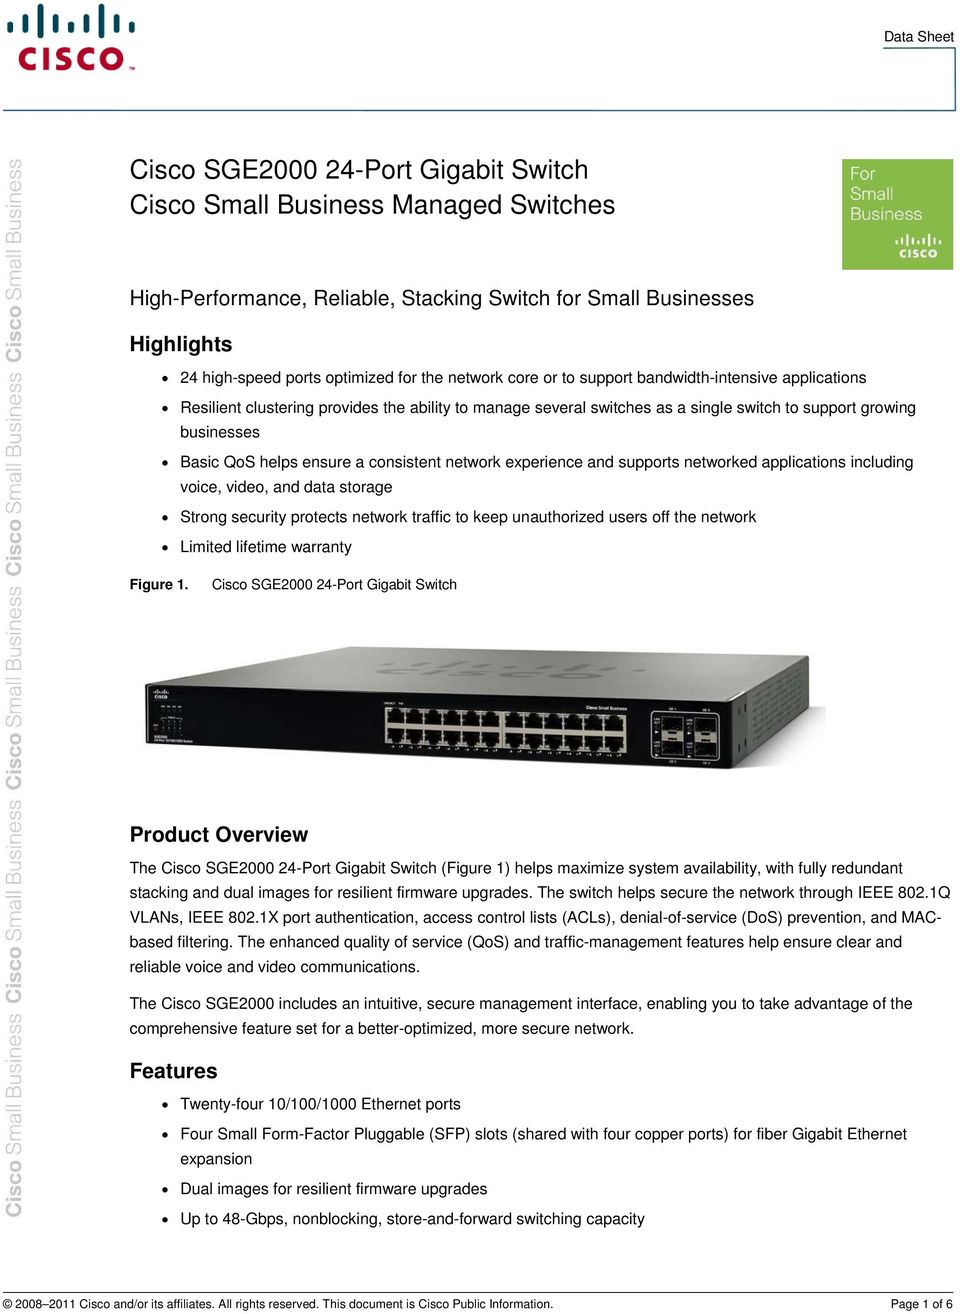 consistent network experience and supports networked applications including voice, video, and data storage Strong security protects network traffic to keep unauthorized users off the network Limited